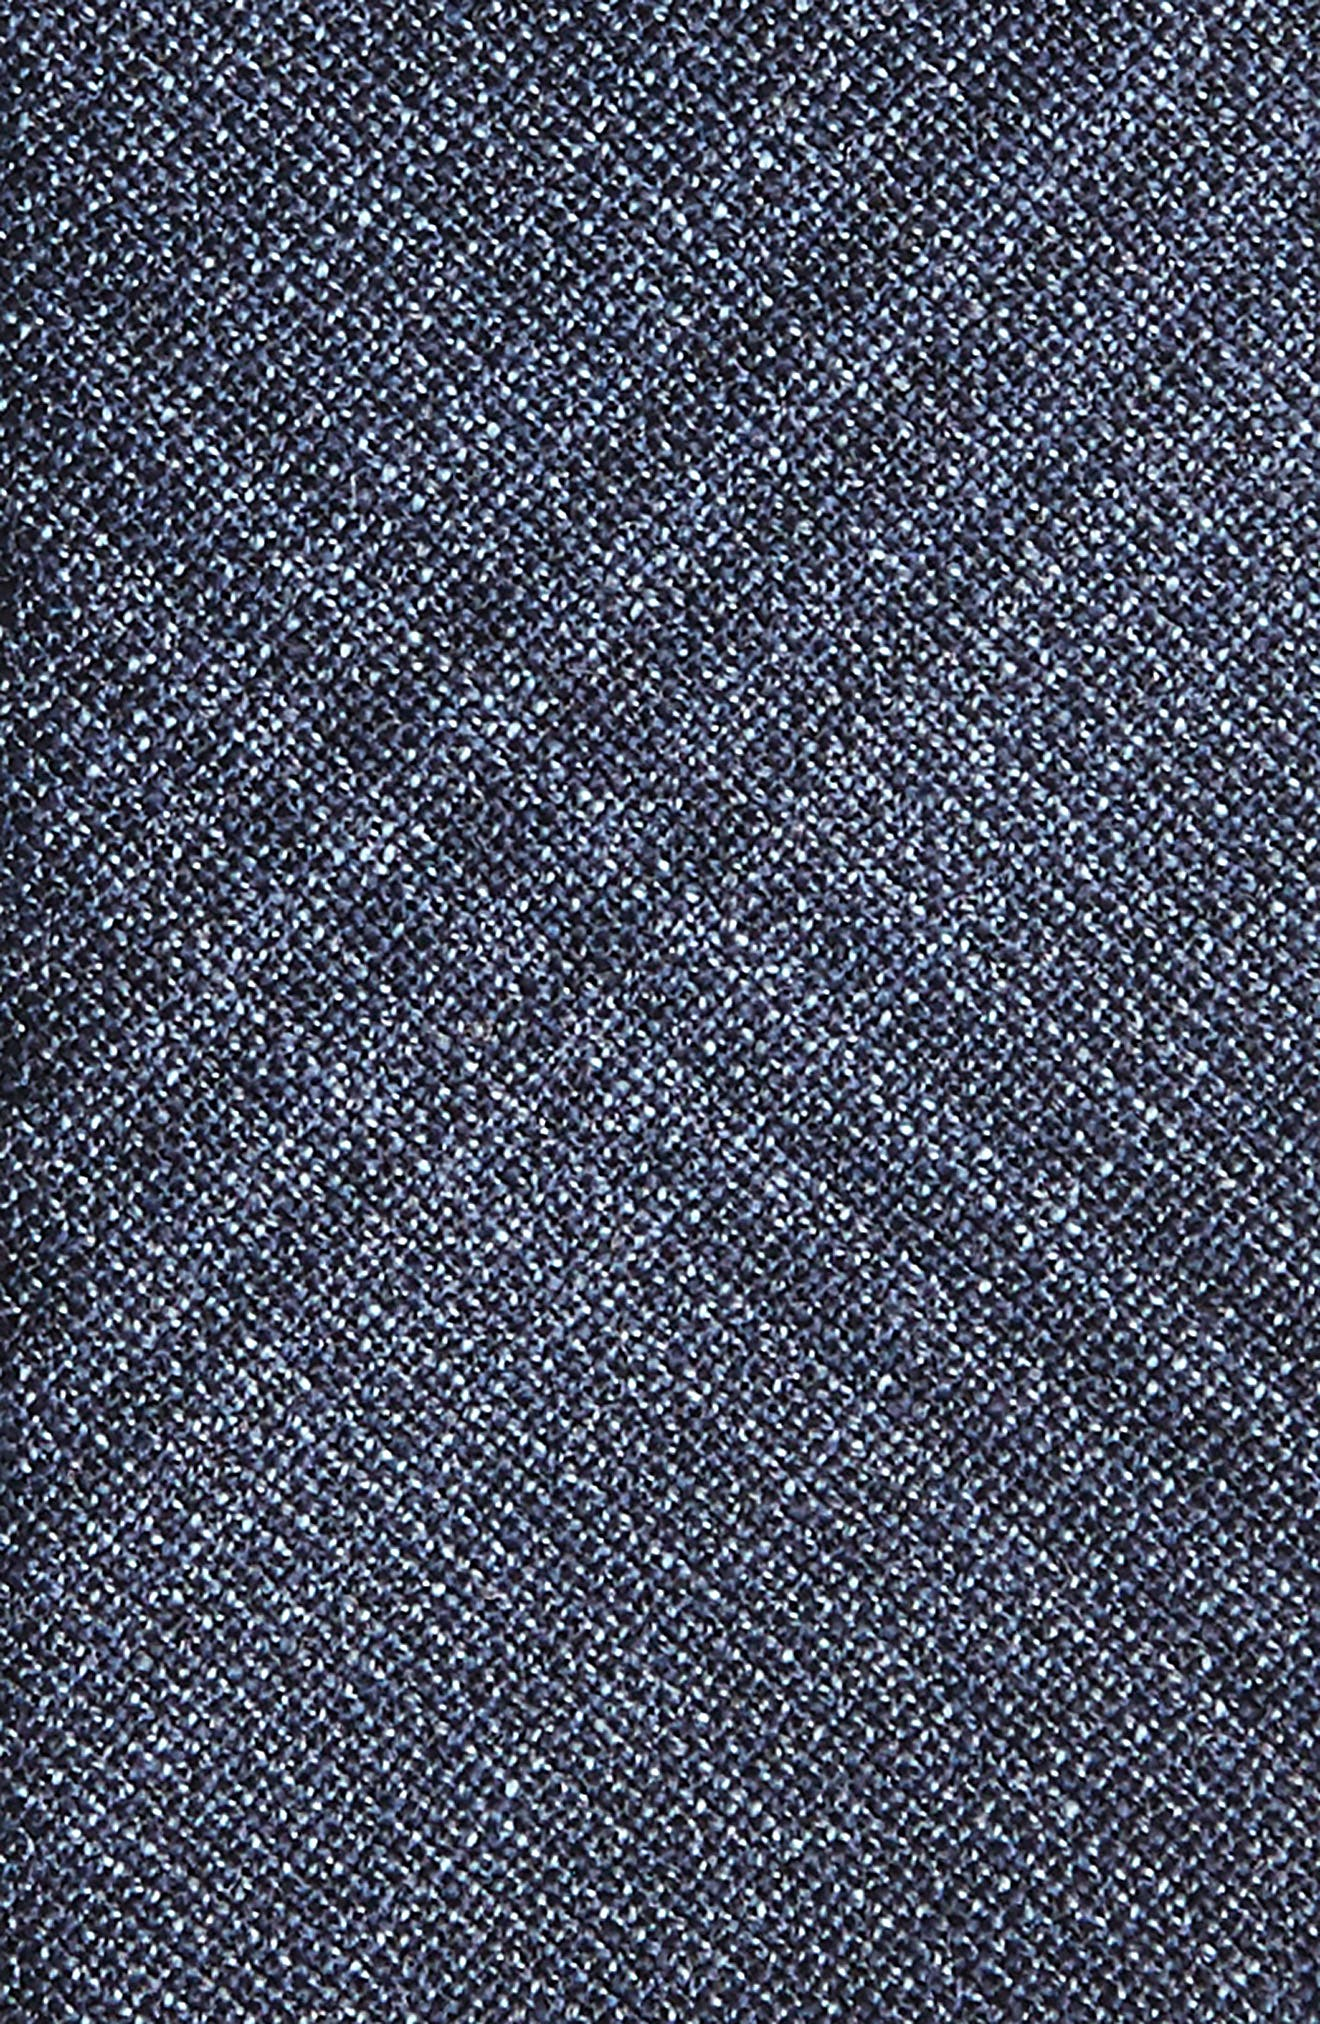 Plaid Wool Tie,                             Alternate thumbnail 2, color,                             031